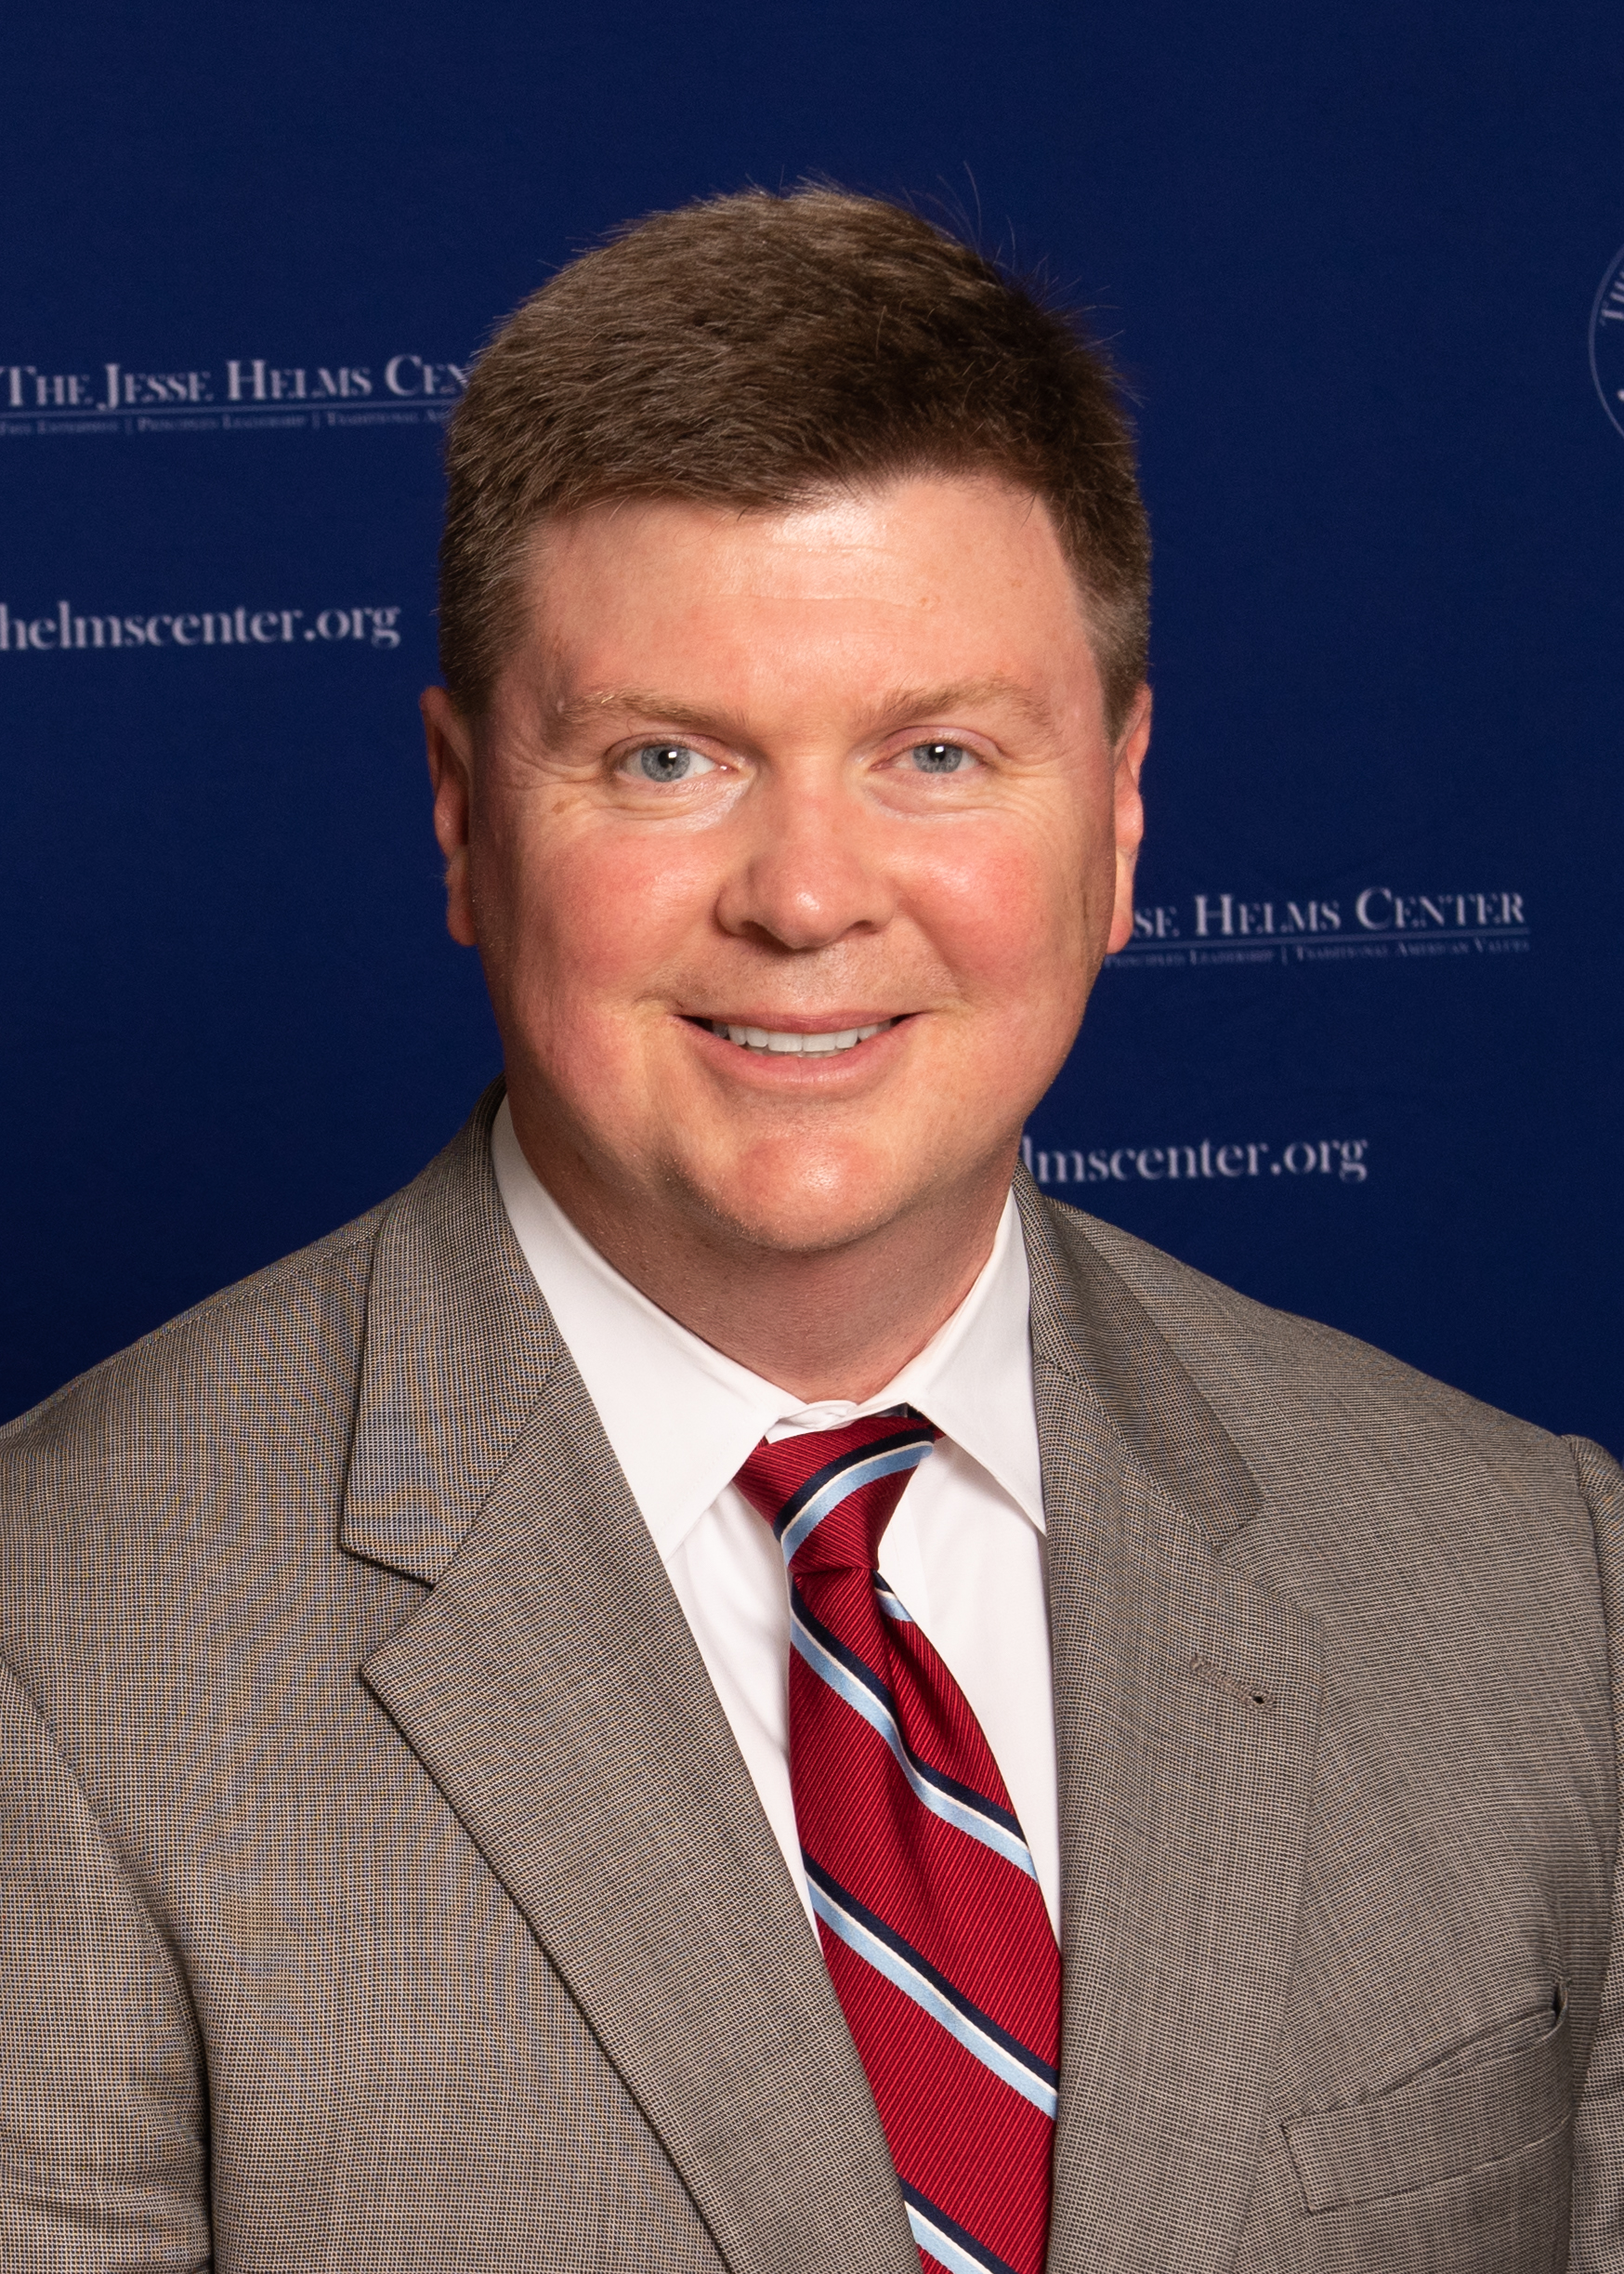 Brian Rogers   President of the Jesse Helms Center, Director of the Free Enterprise Leadership Challenge